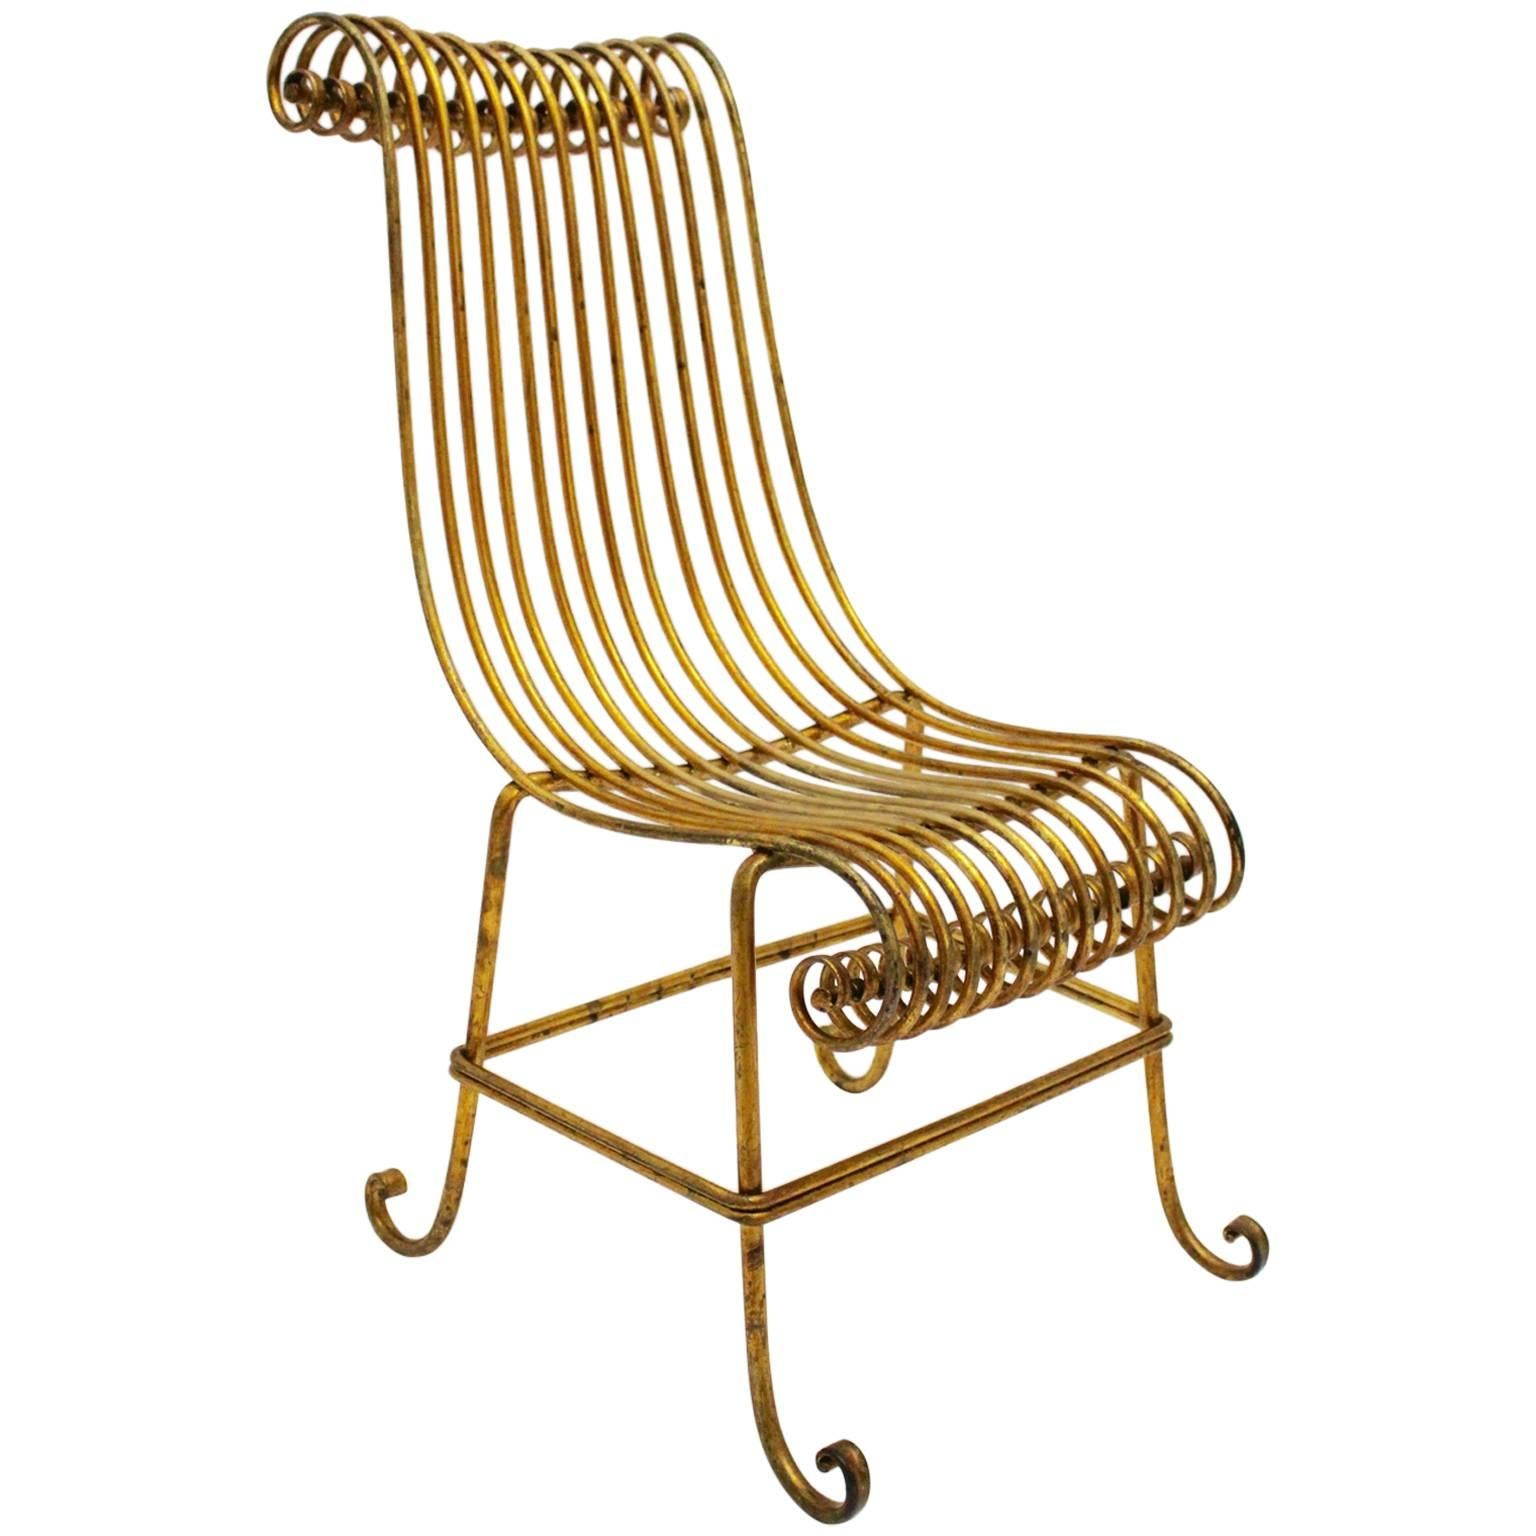 Hollywood Regency Style Golden Metal Sculptural Vintage Side Chair Italy 1940s